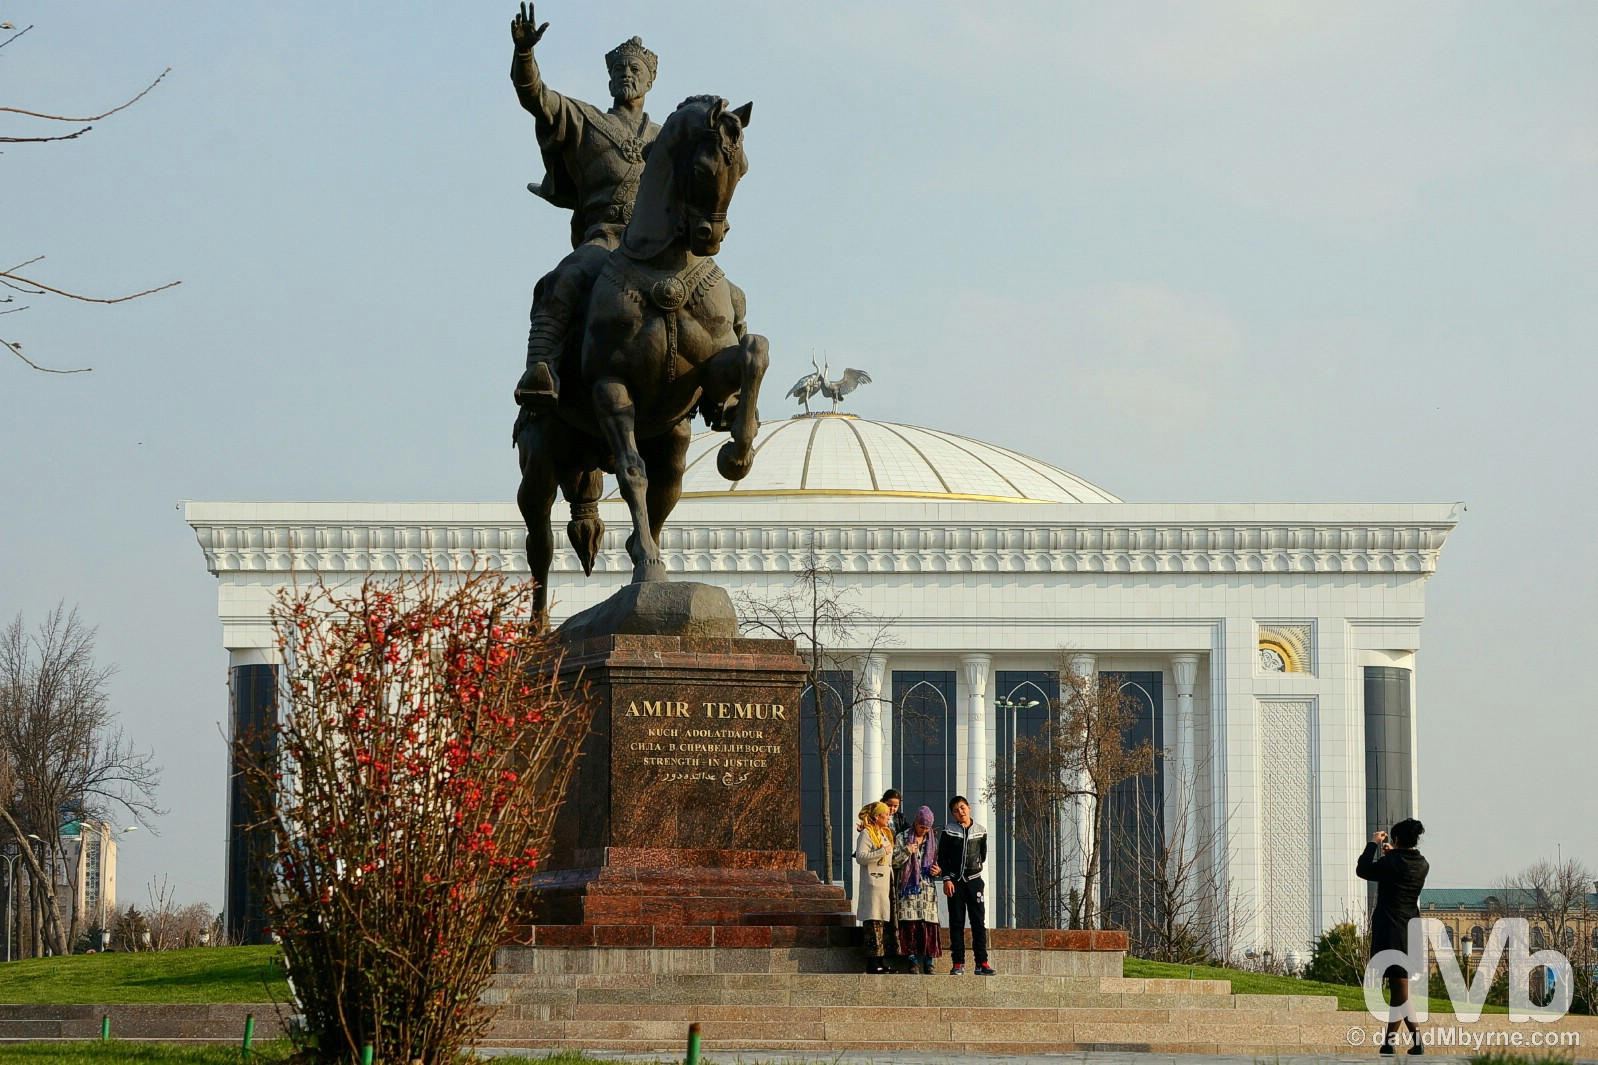 Photo time by the Timur Statue in Amir Timur Maydoni, the ceremonial centre of Tashkent, Uzbekistan. March 5, 2015.